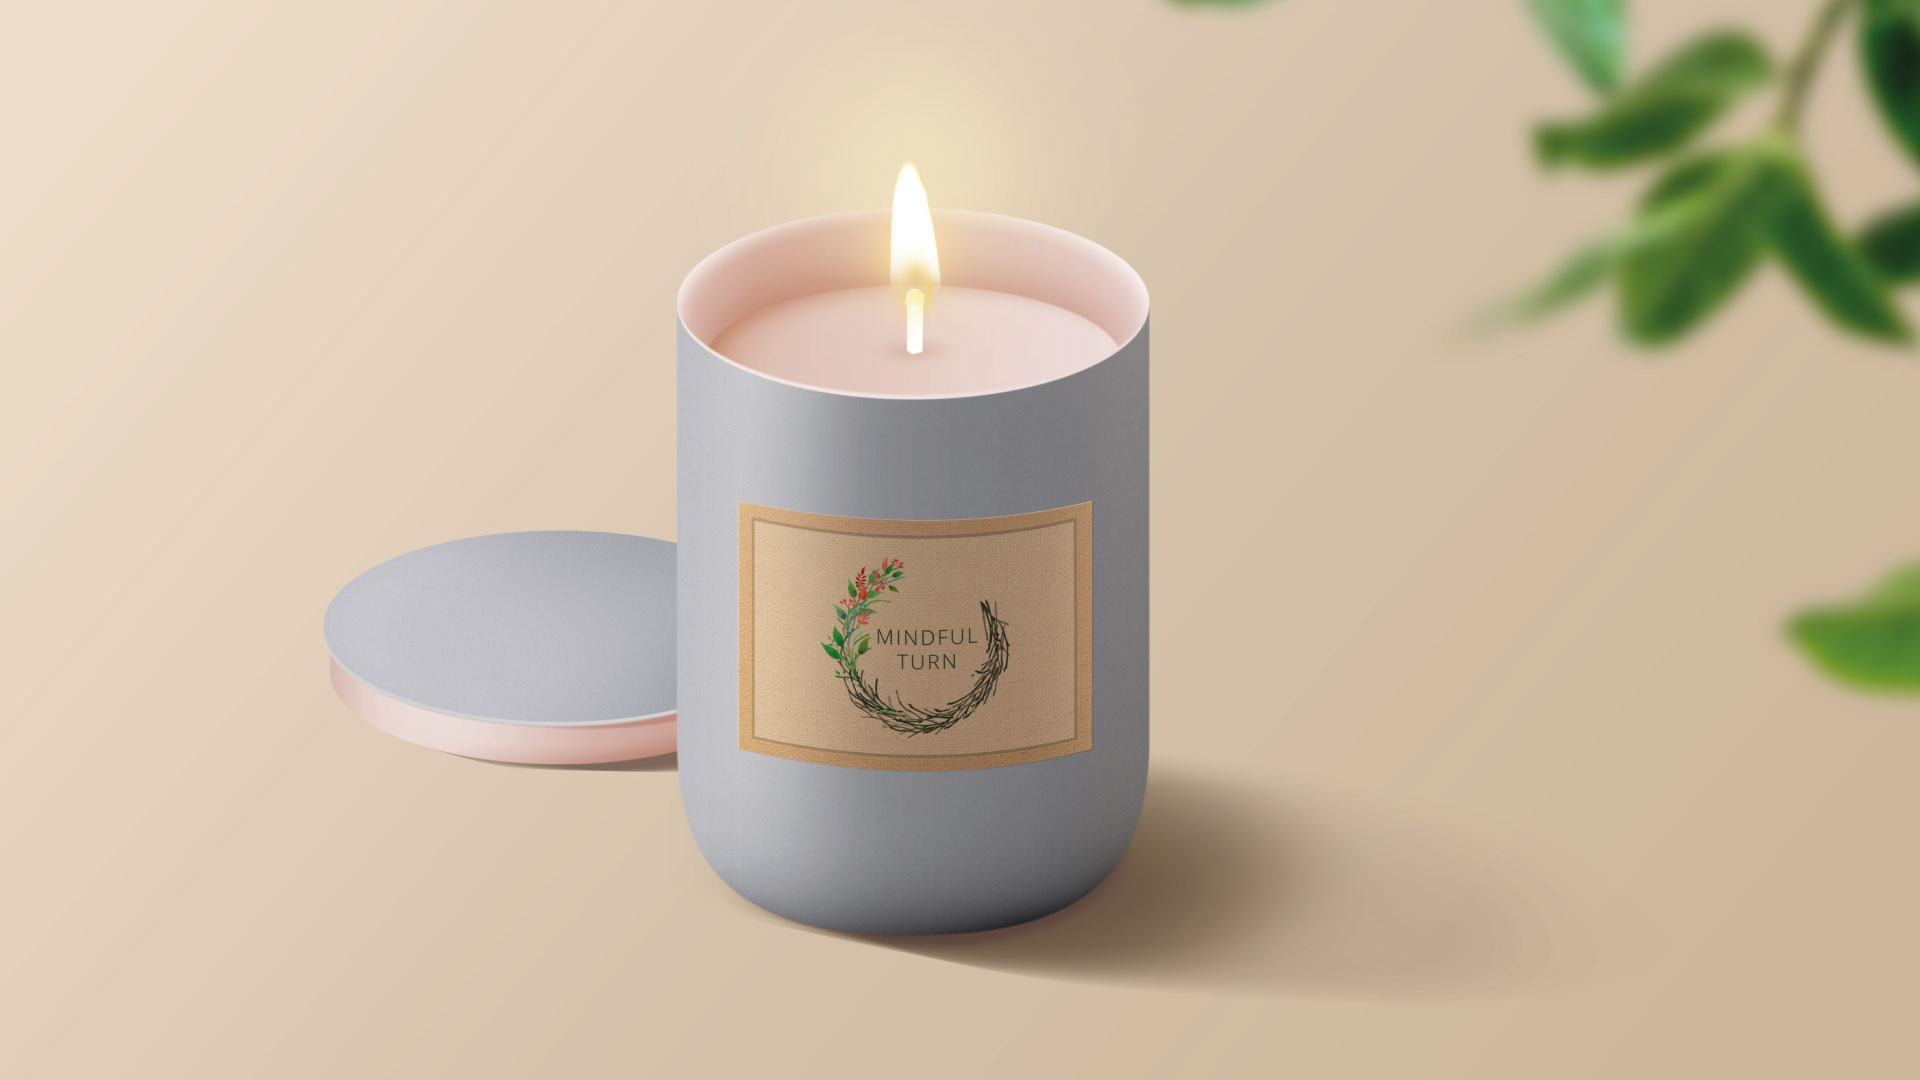 Mindful Turn Candle